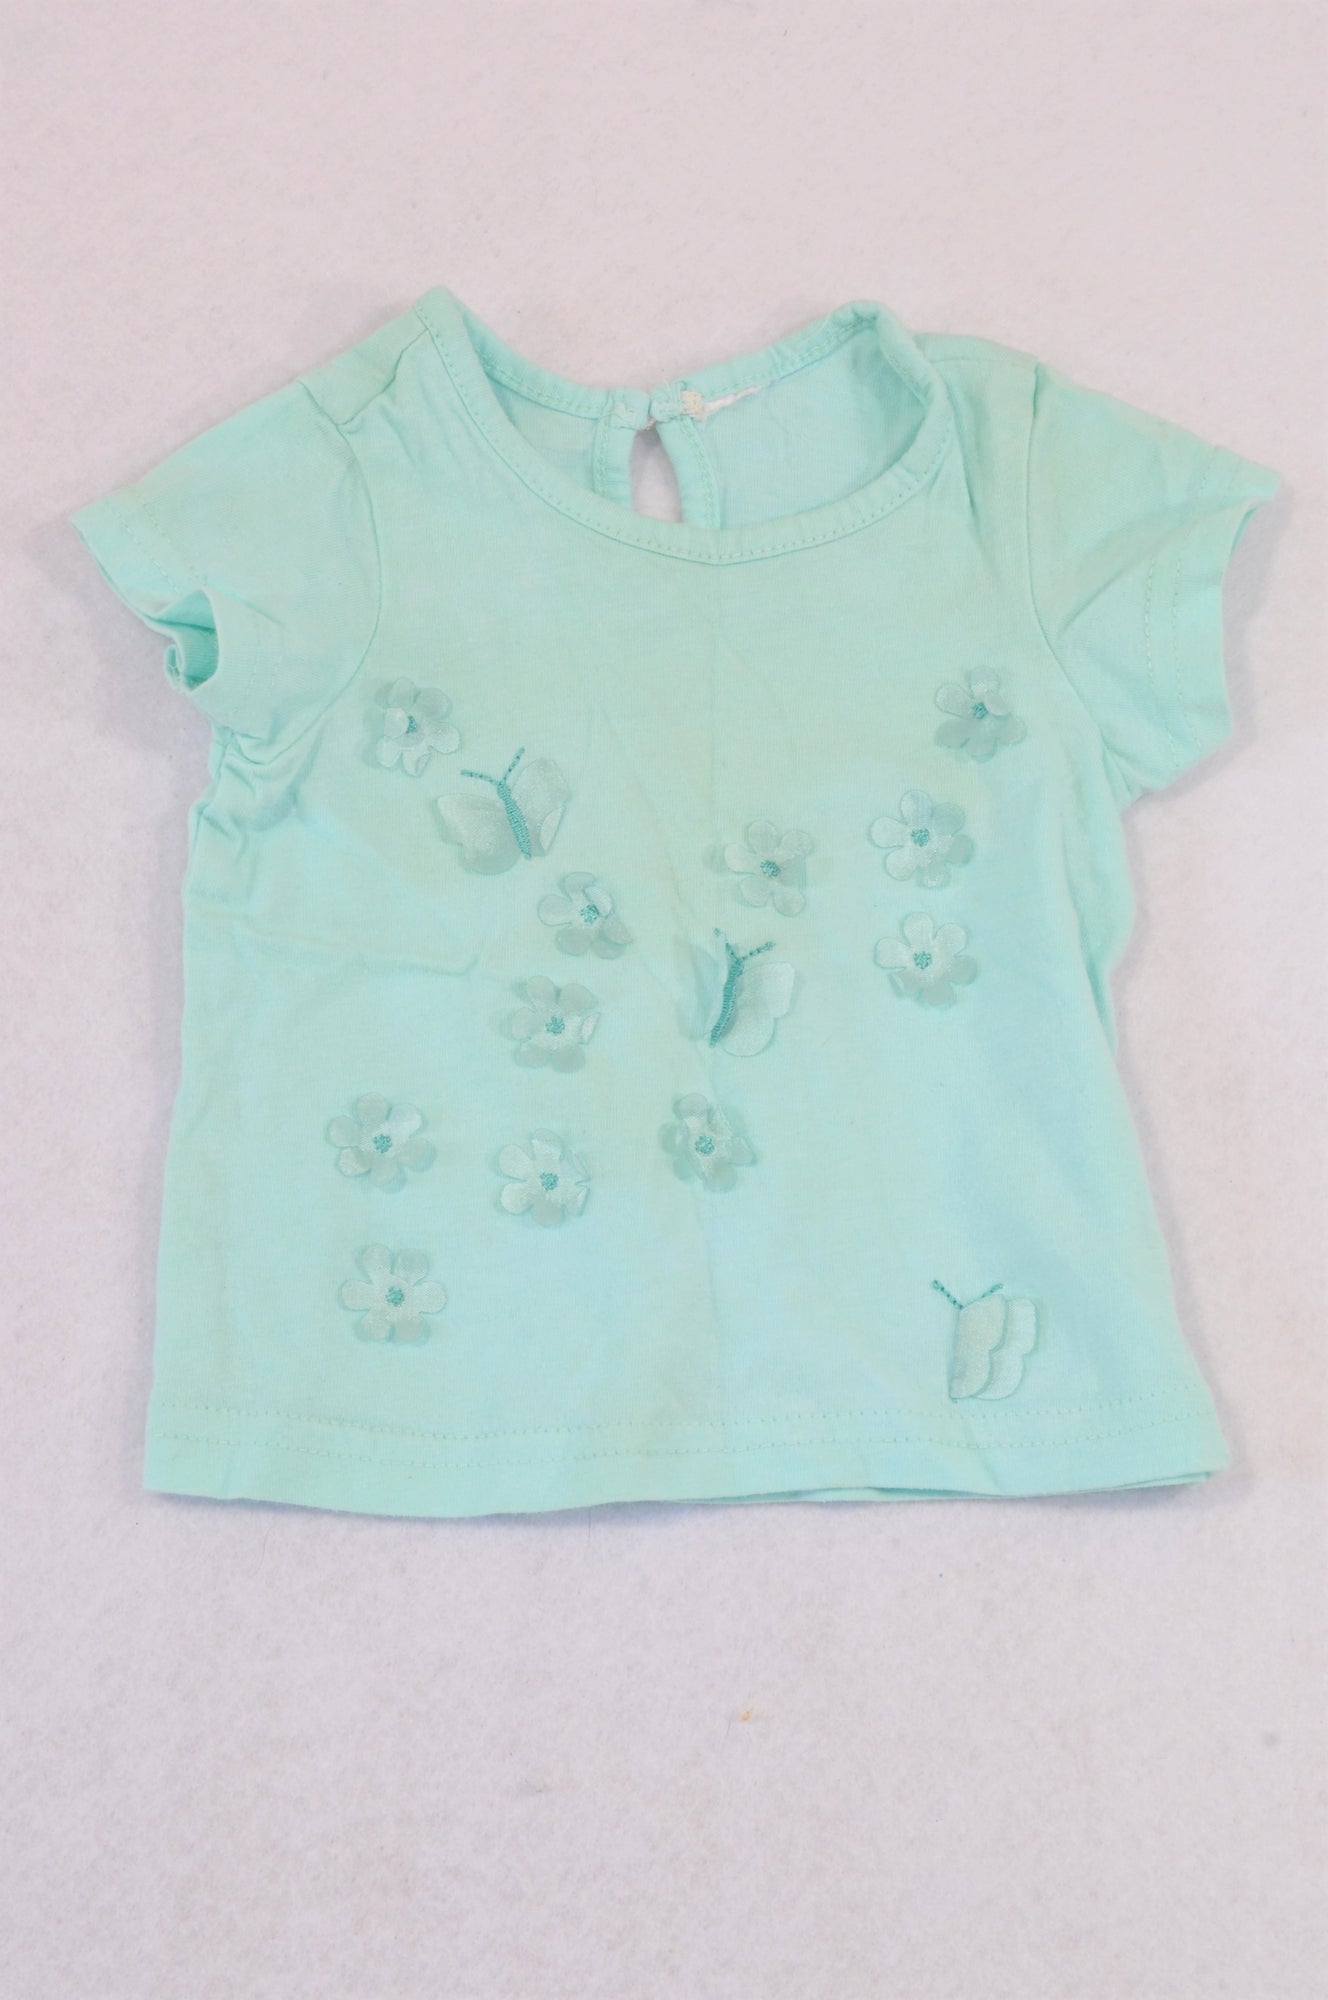 Unbranded Light Blue Butterfly T-shirt Girls 0-3 months